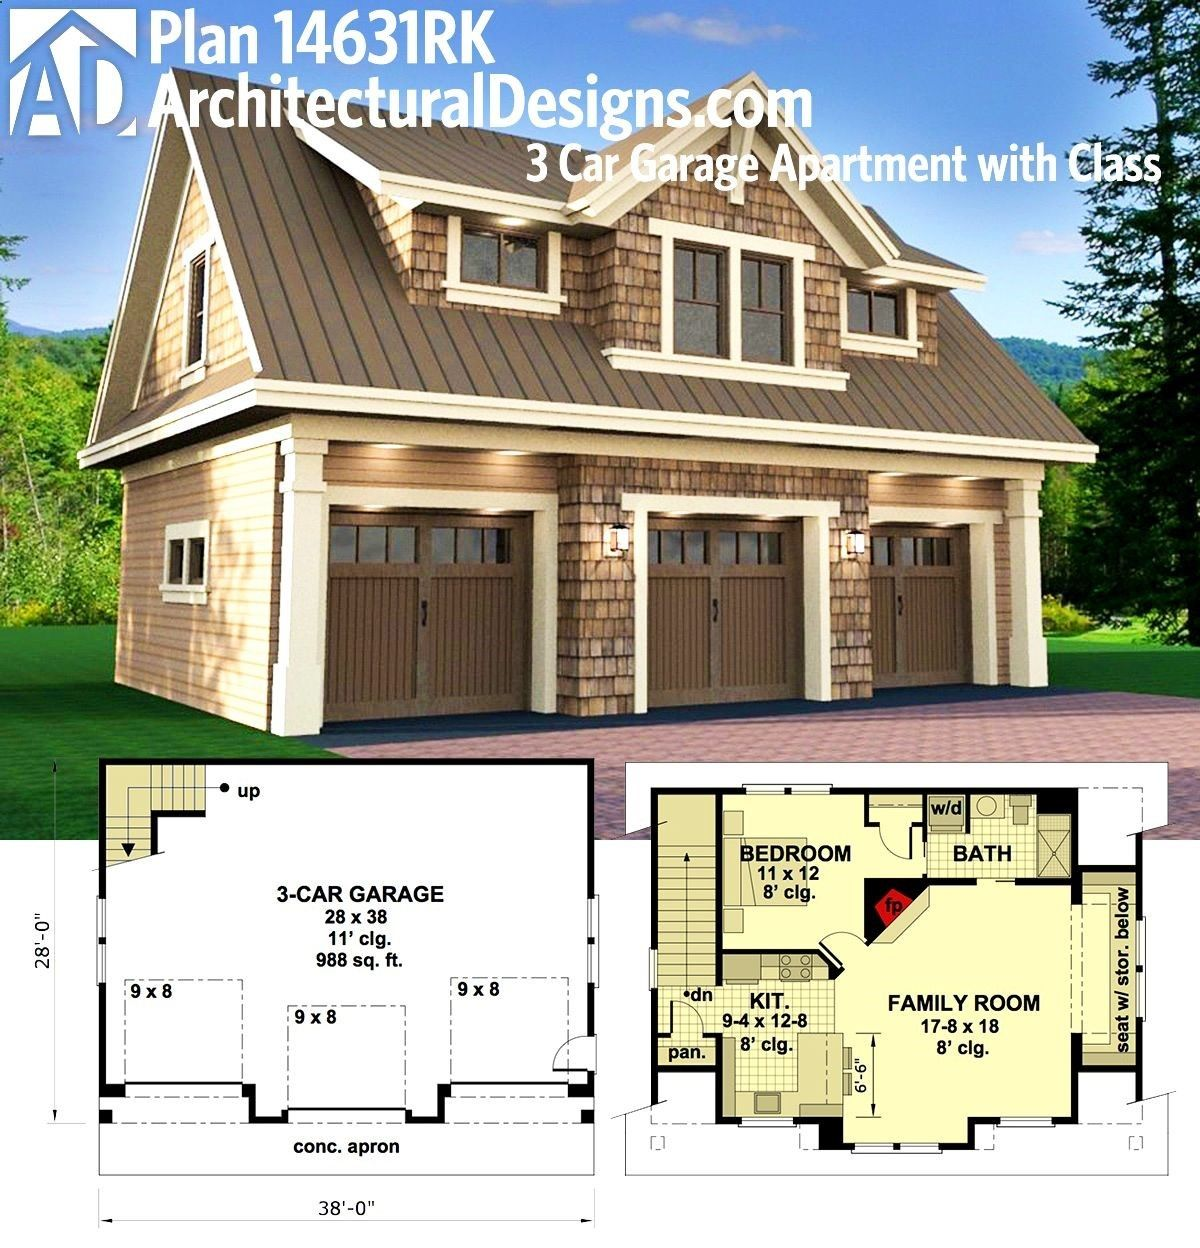 3 car garage apartment plans 2 bedroom latest for 2 car garage with apartment